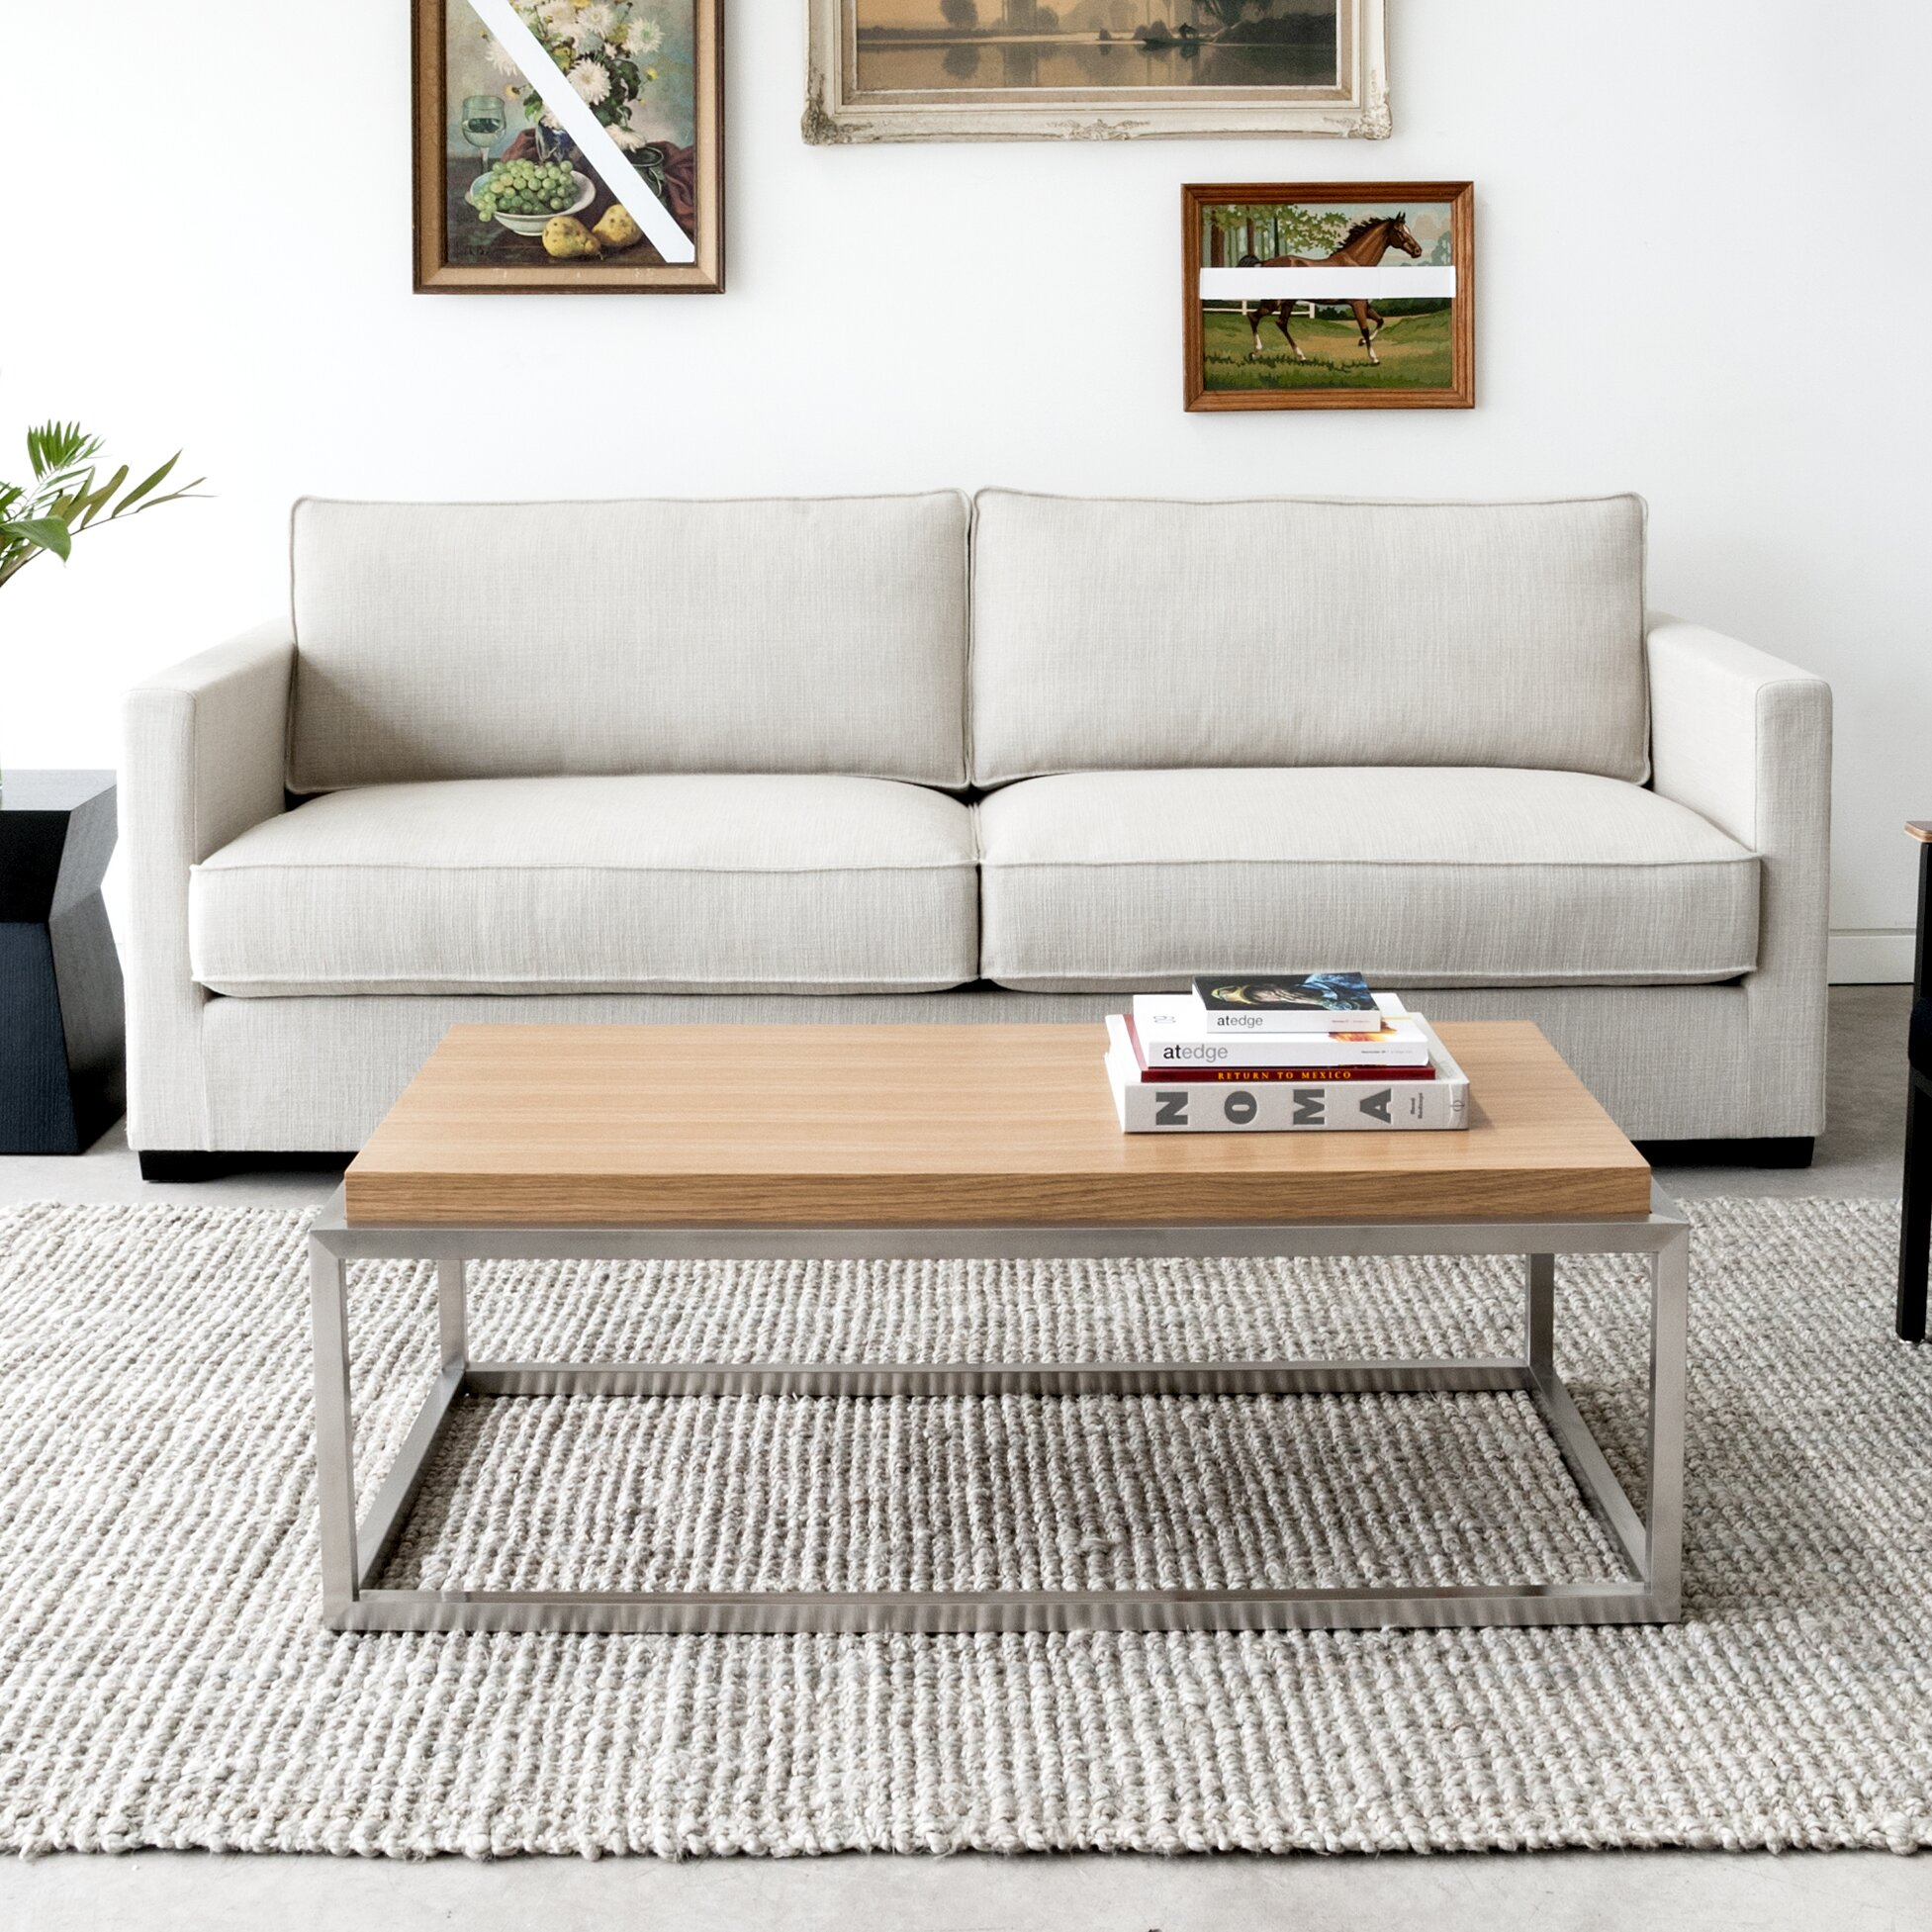 Gus Modern Richmond Sofa Reviews Wayfair